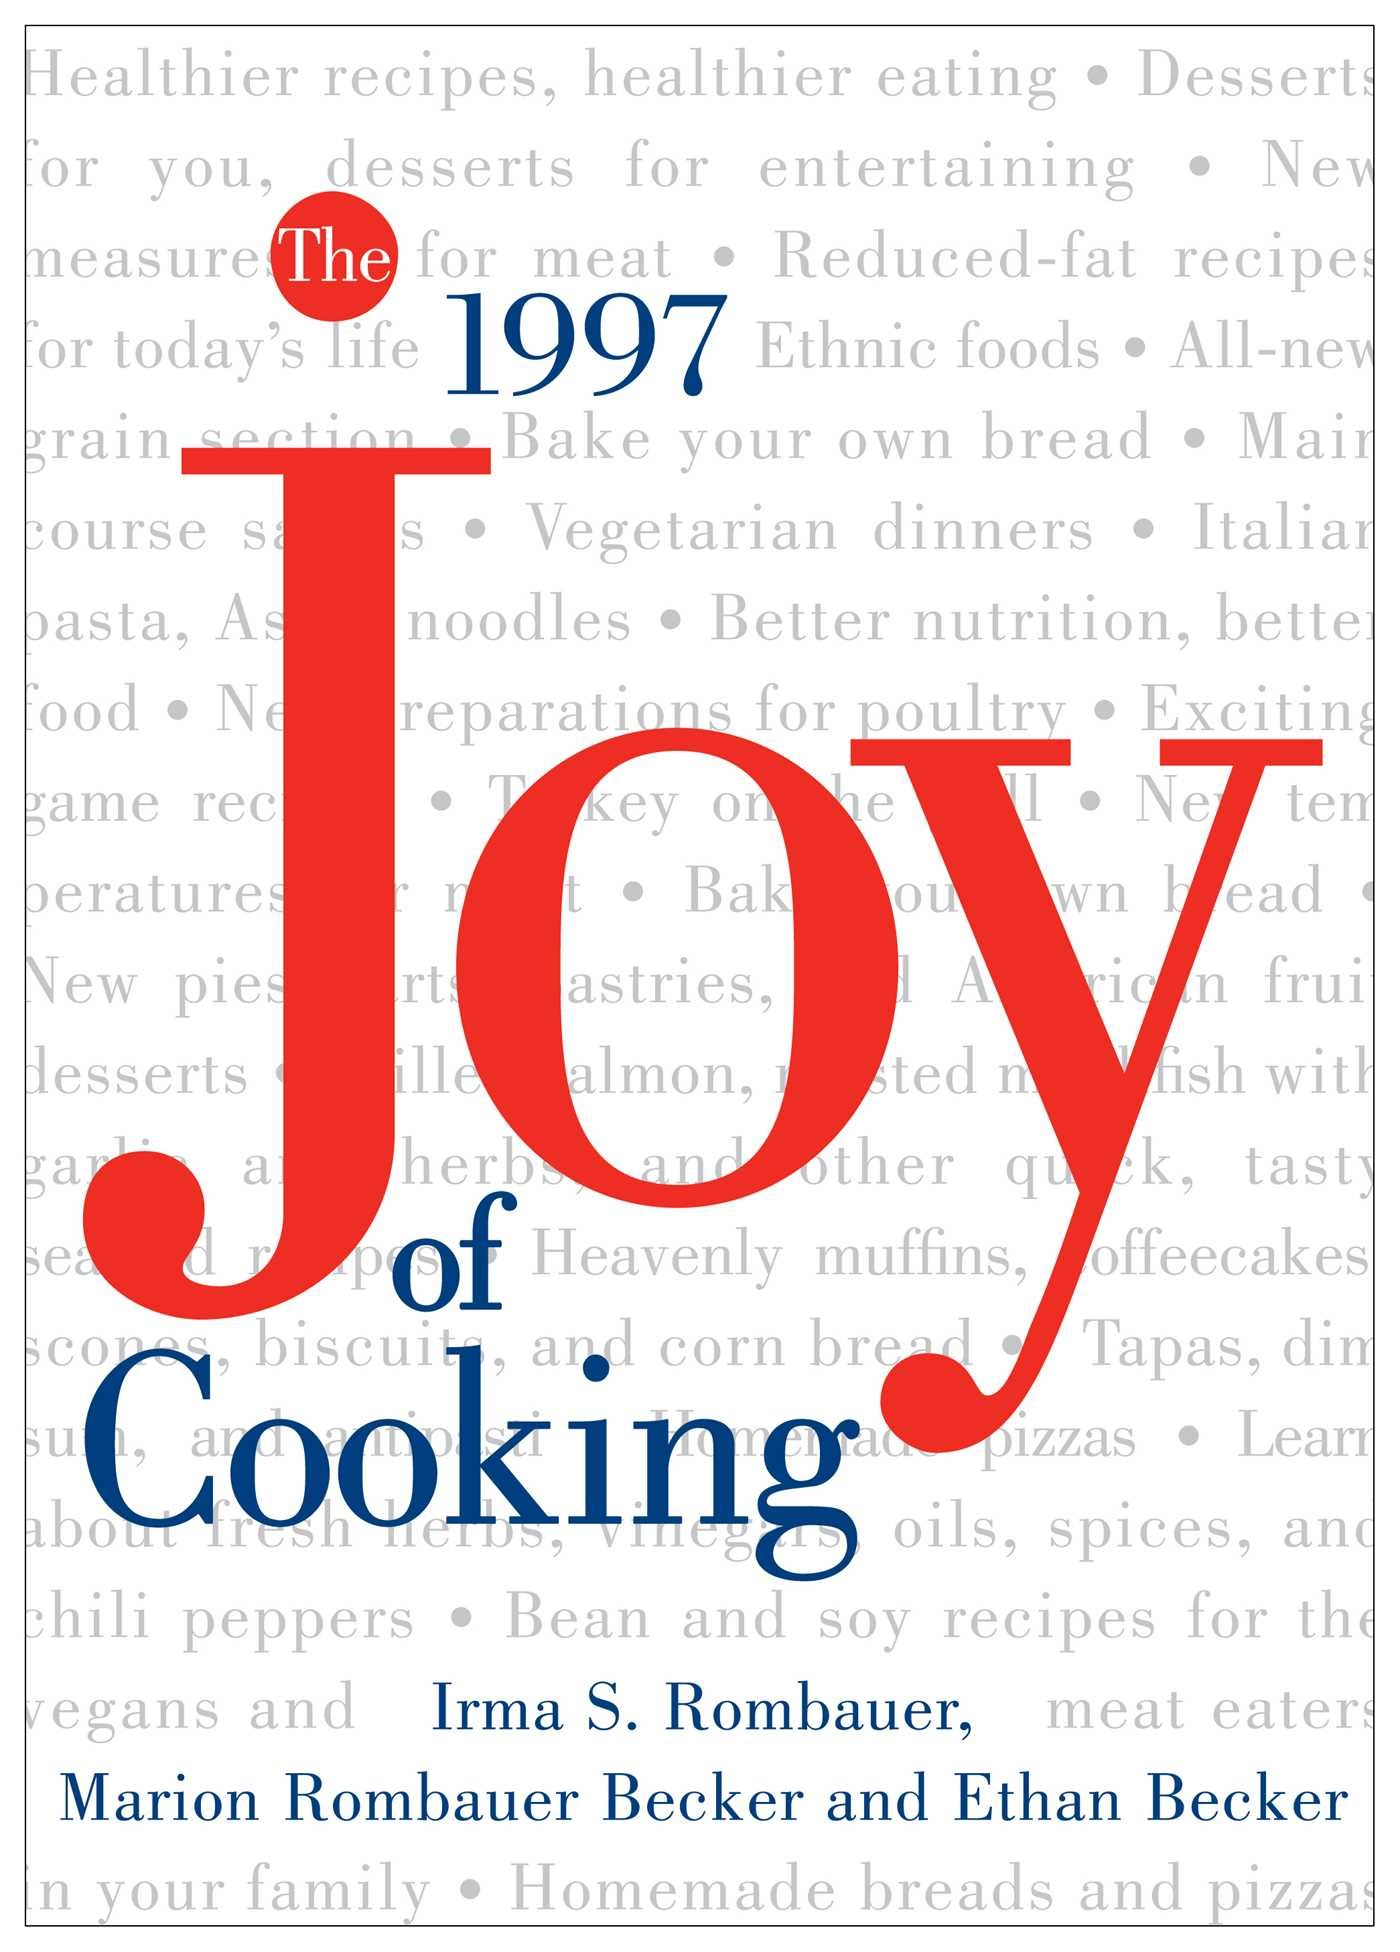 My Joy of Cooking